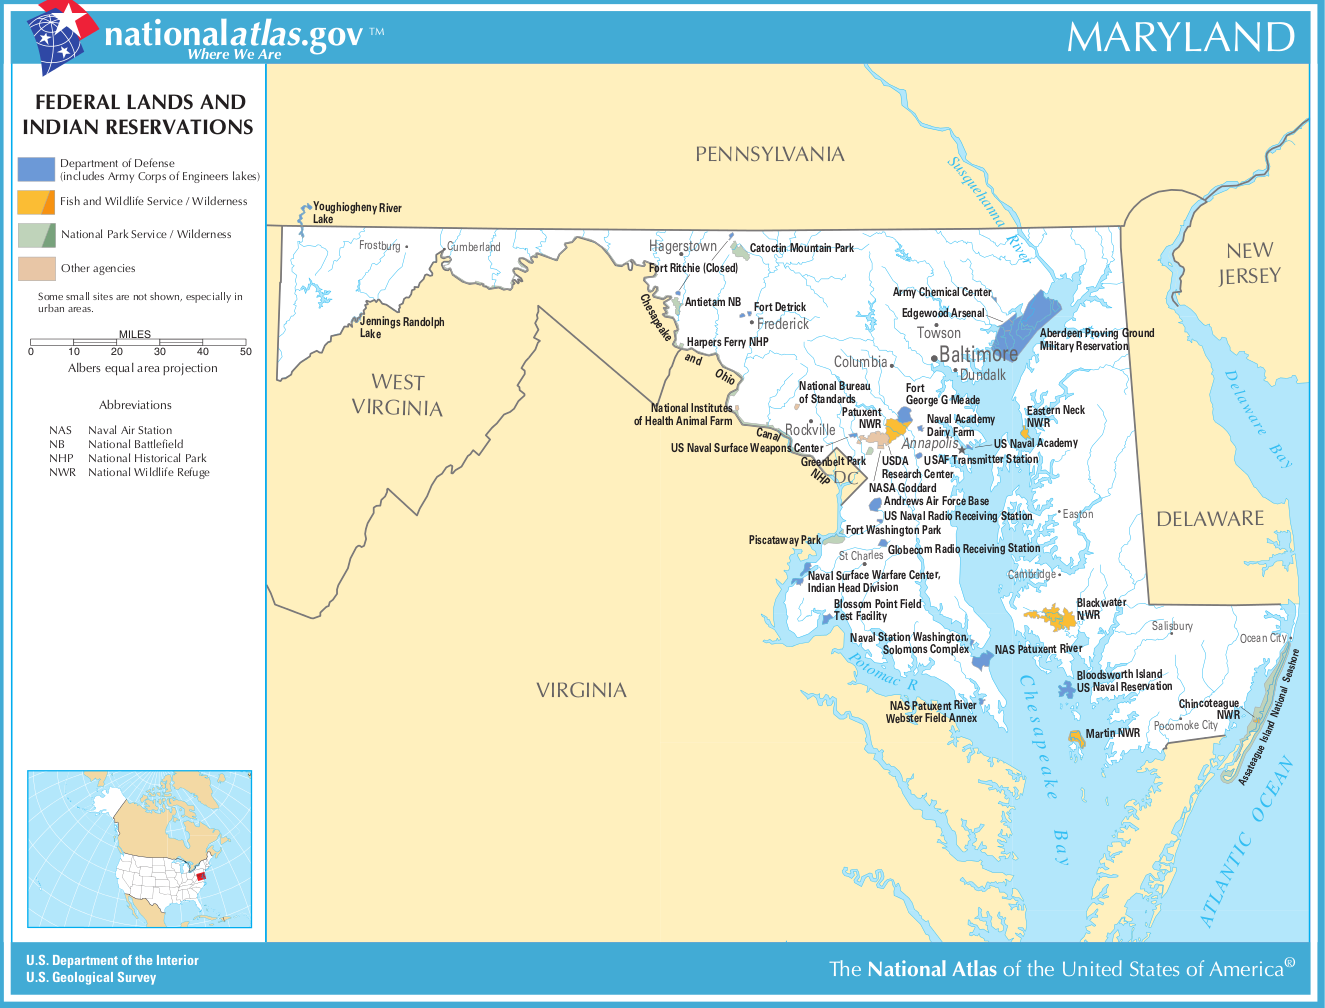 Map Of Maryland Map Federal Lands And Indian Reservations - Indian reservations us map